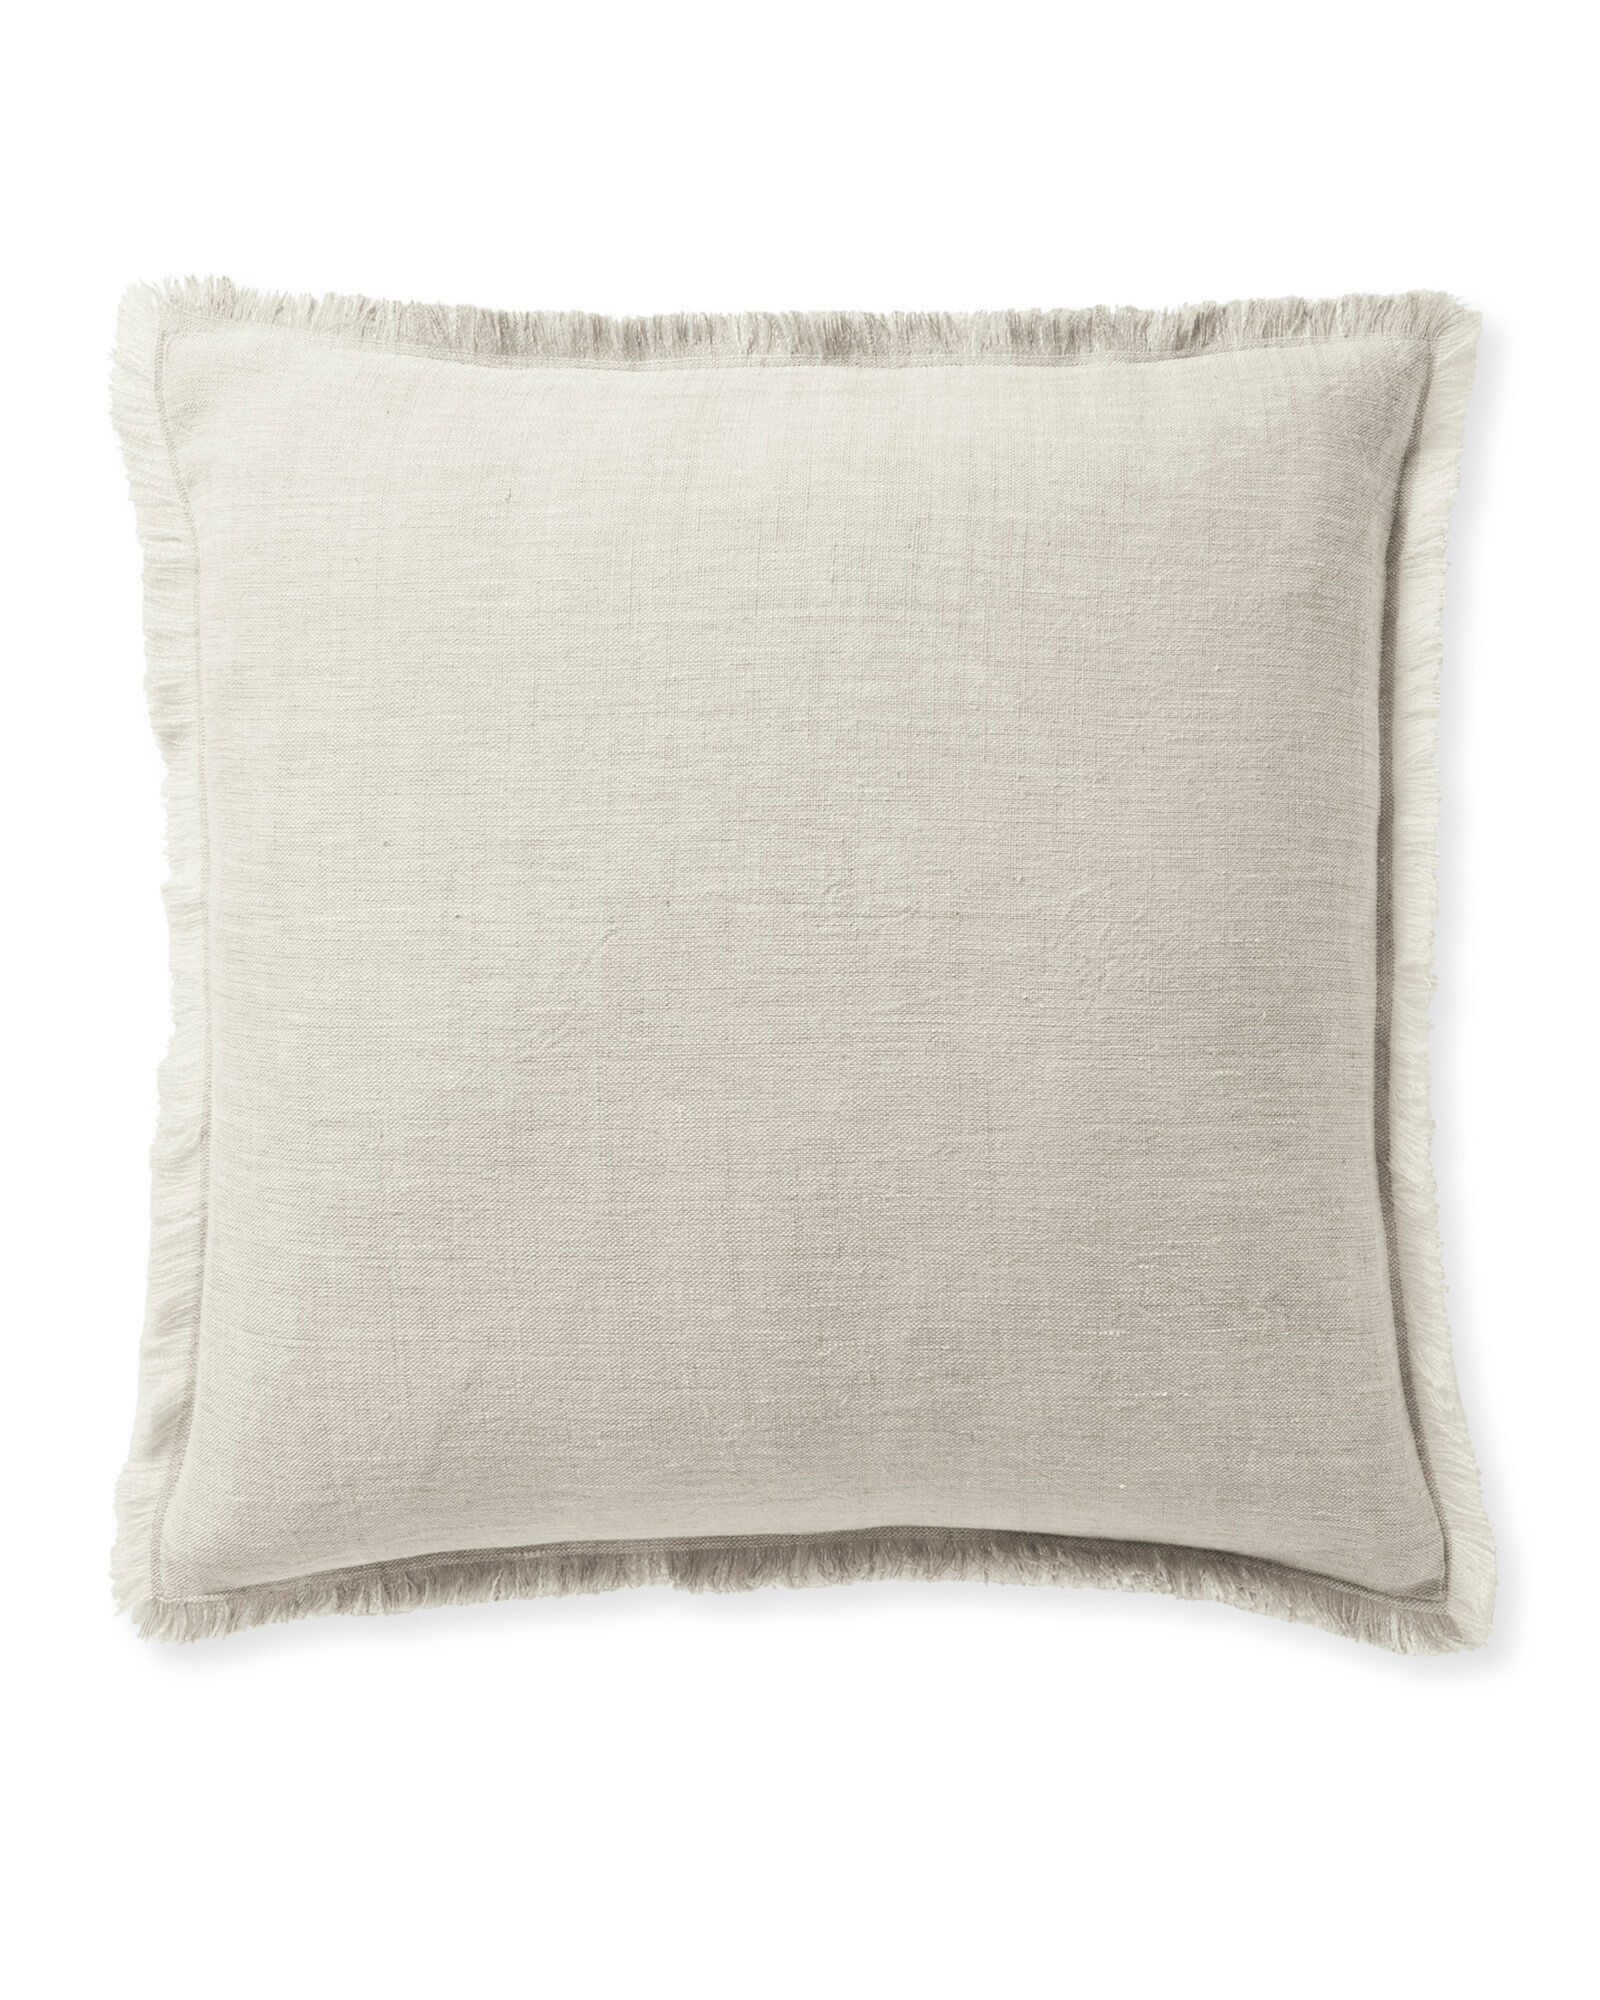 Avalis Pillow Cover